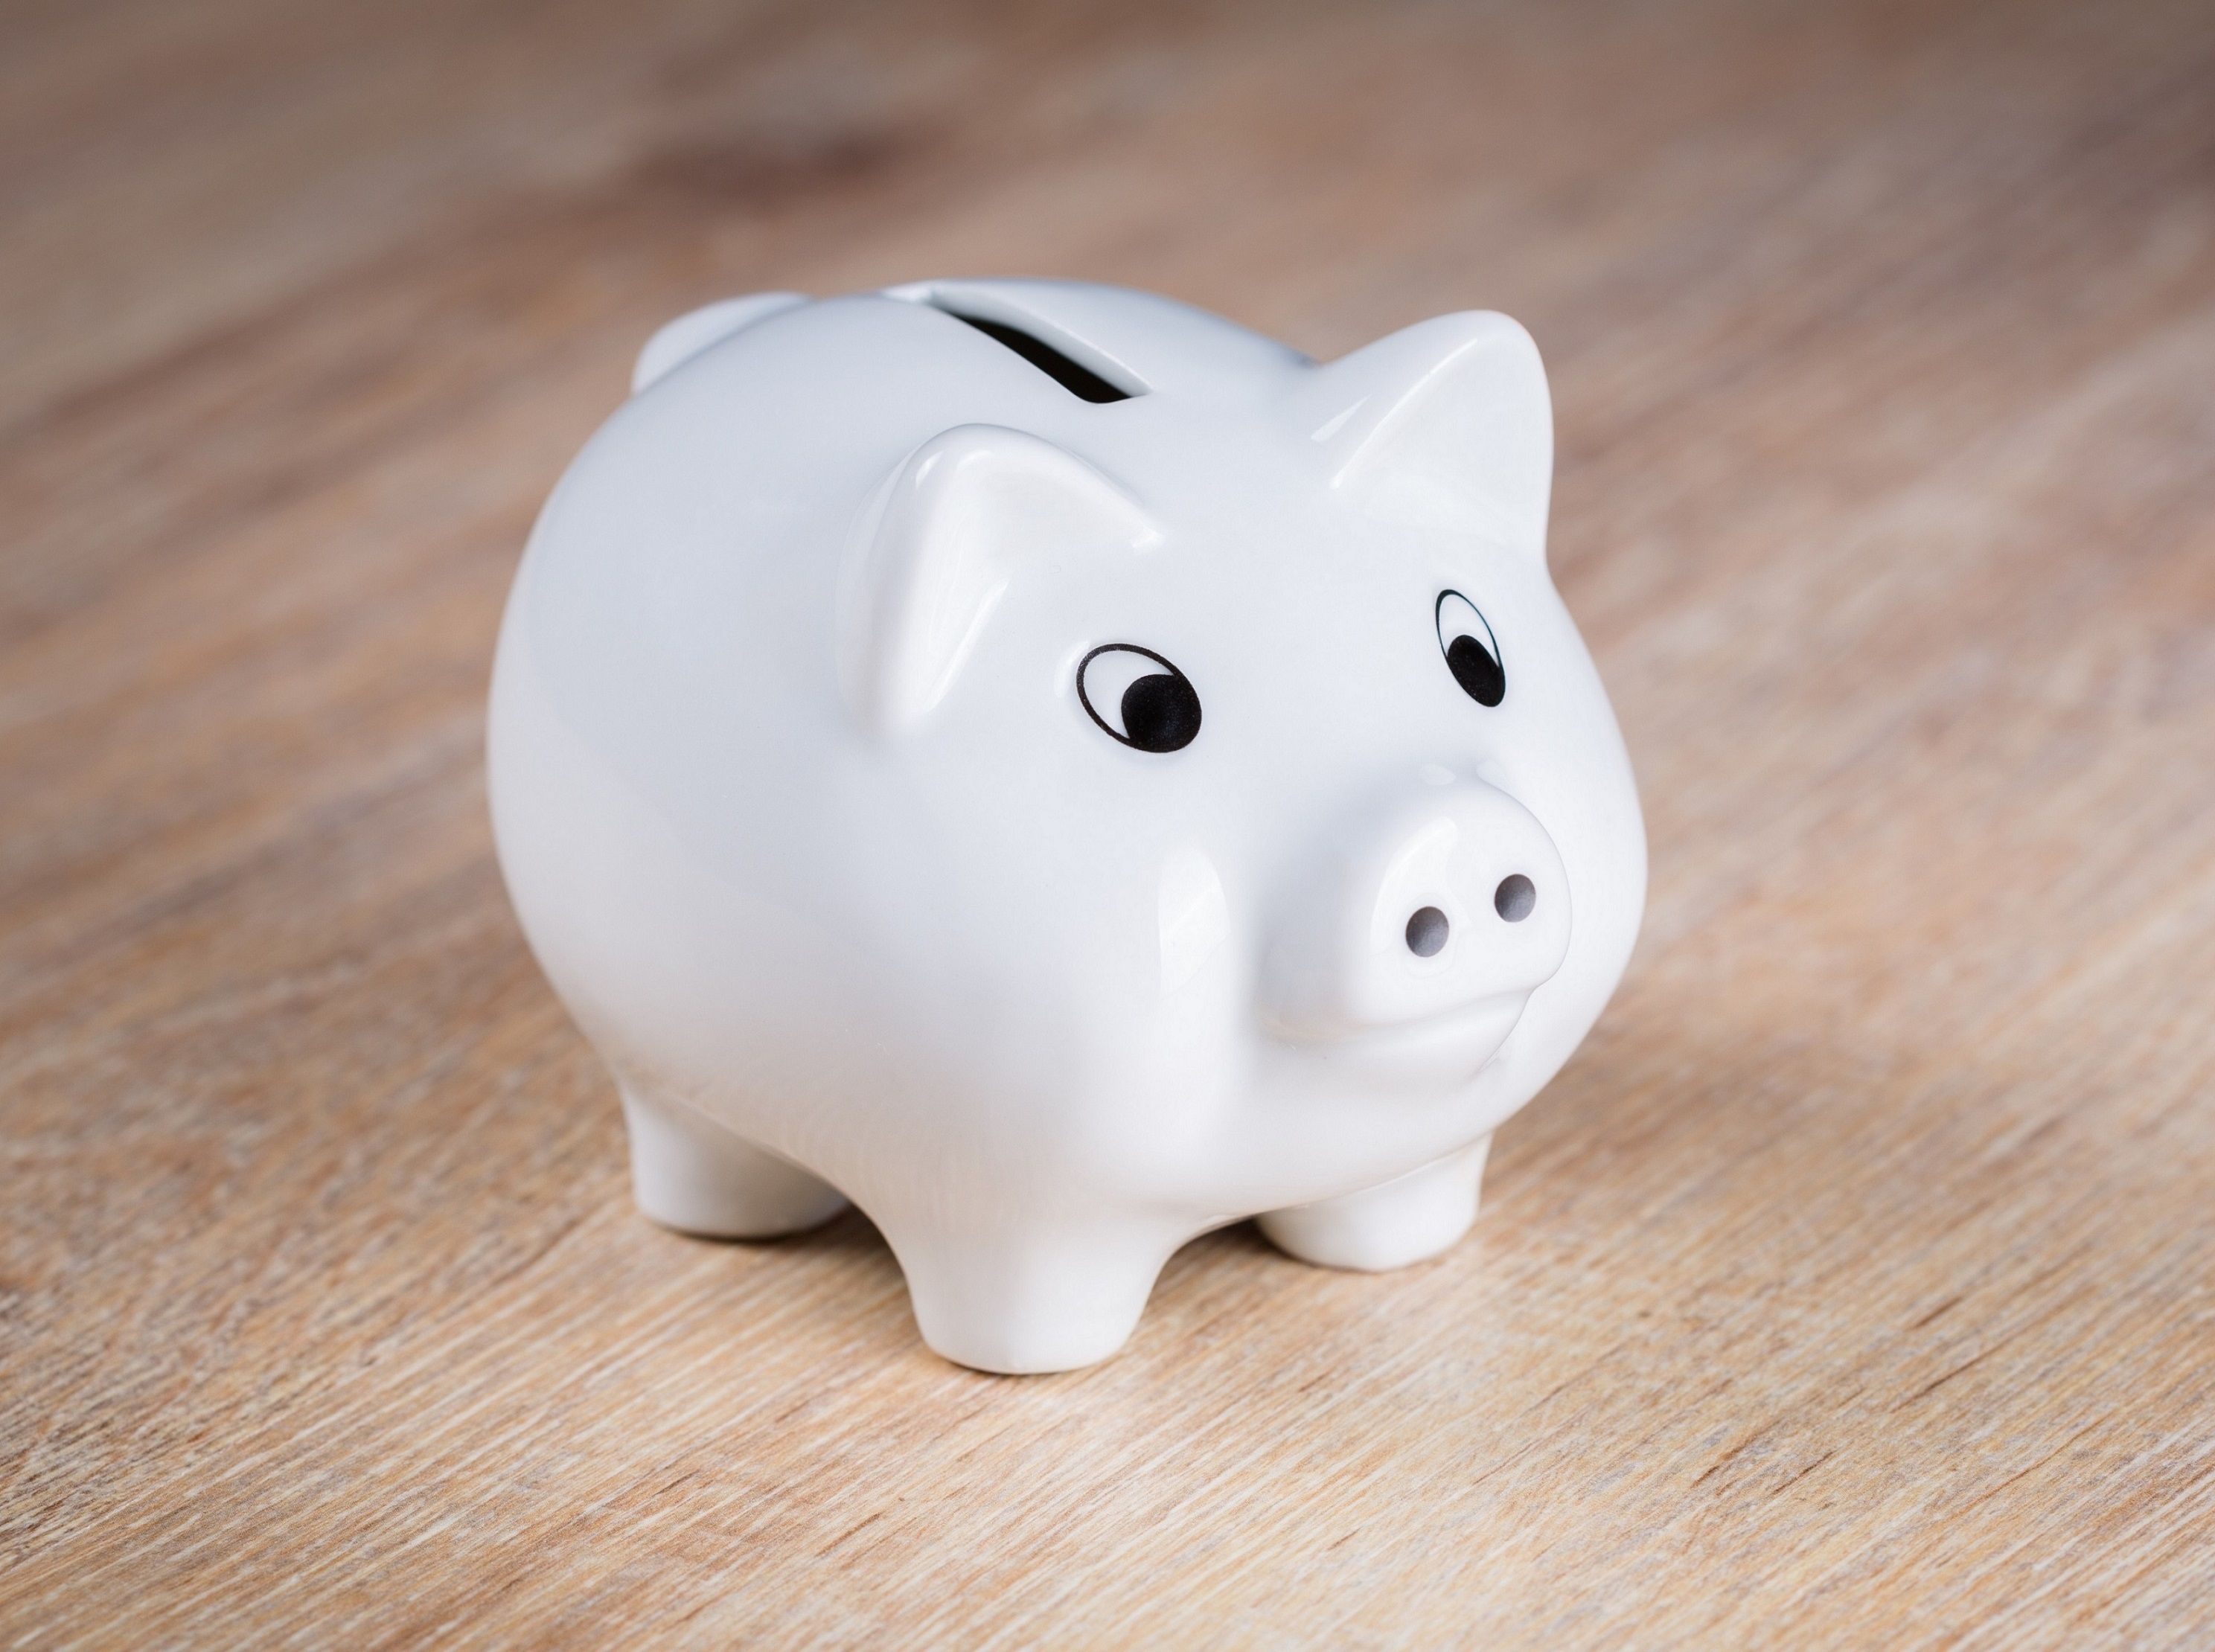 Can you deposit Trust in a Piggy Bank?